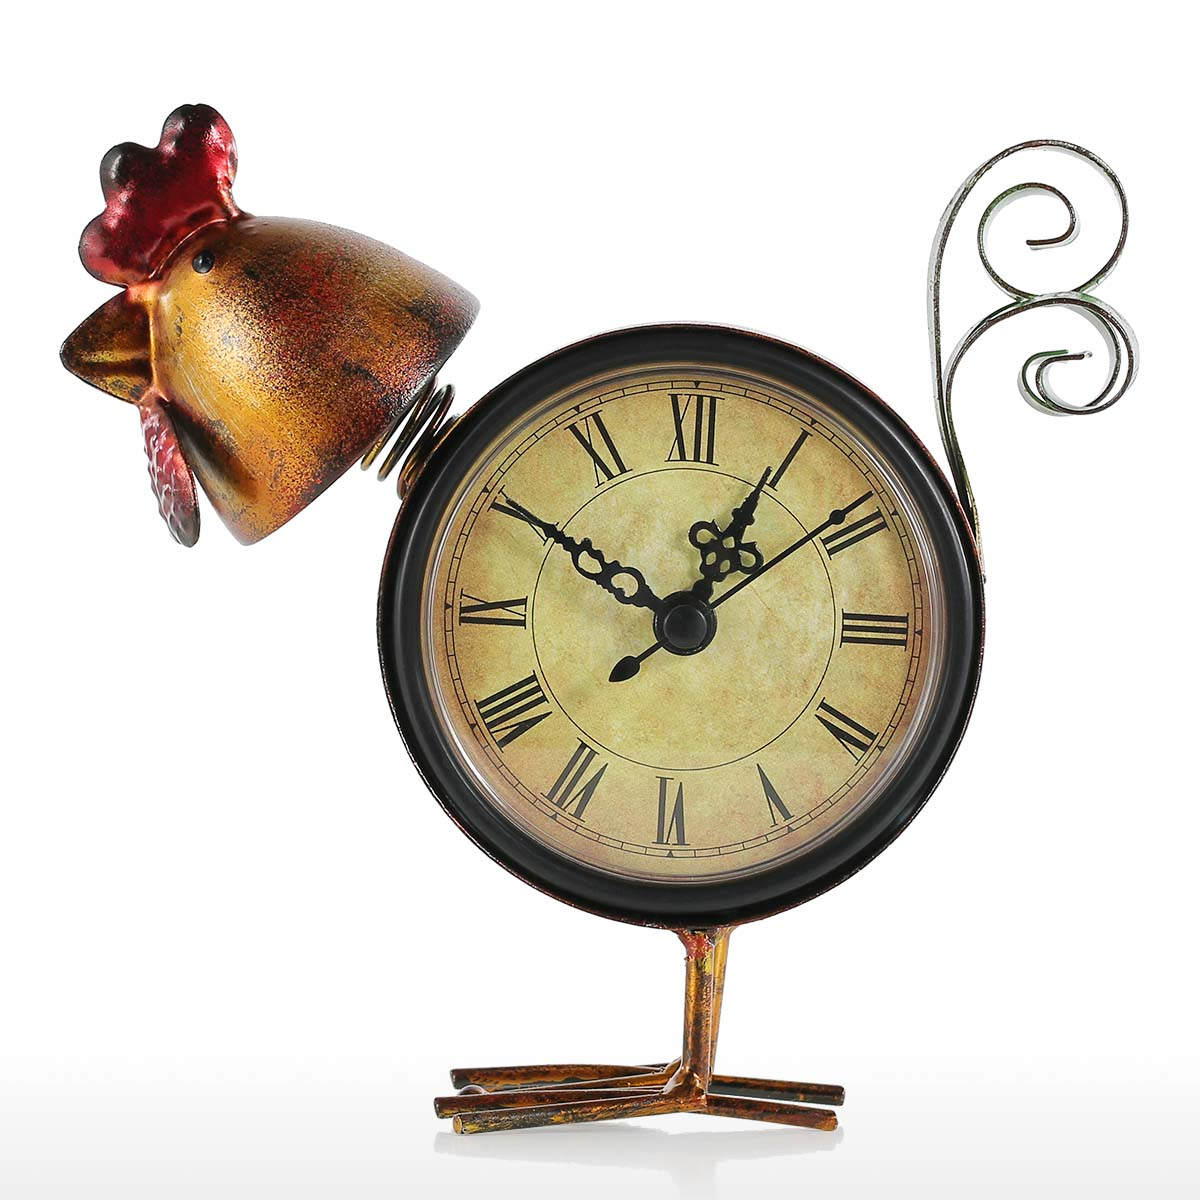 Chick Clock Handmade Vintage Metal Chick Figurine Mute Table Clock  Practical Clock One AA Battery